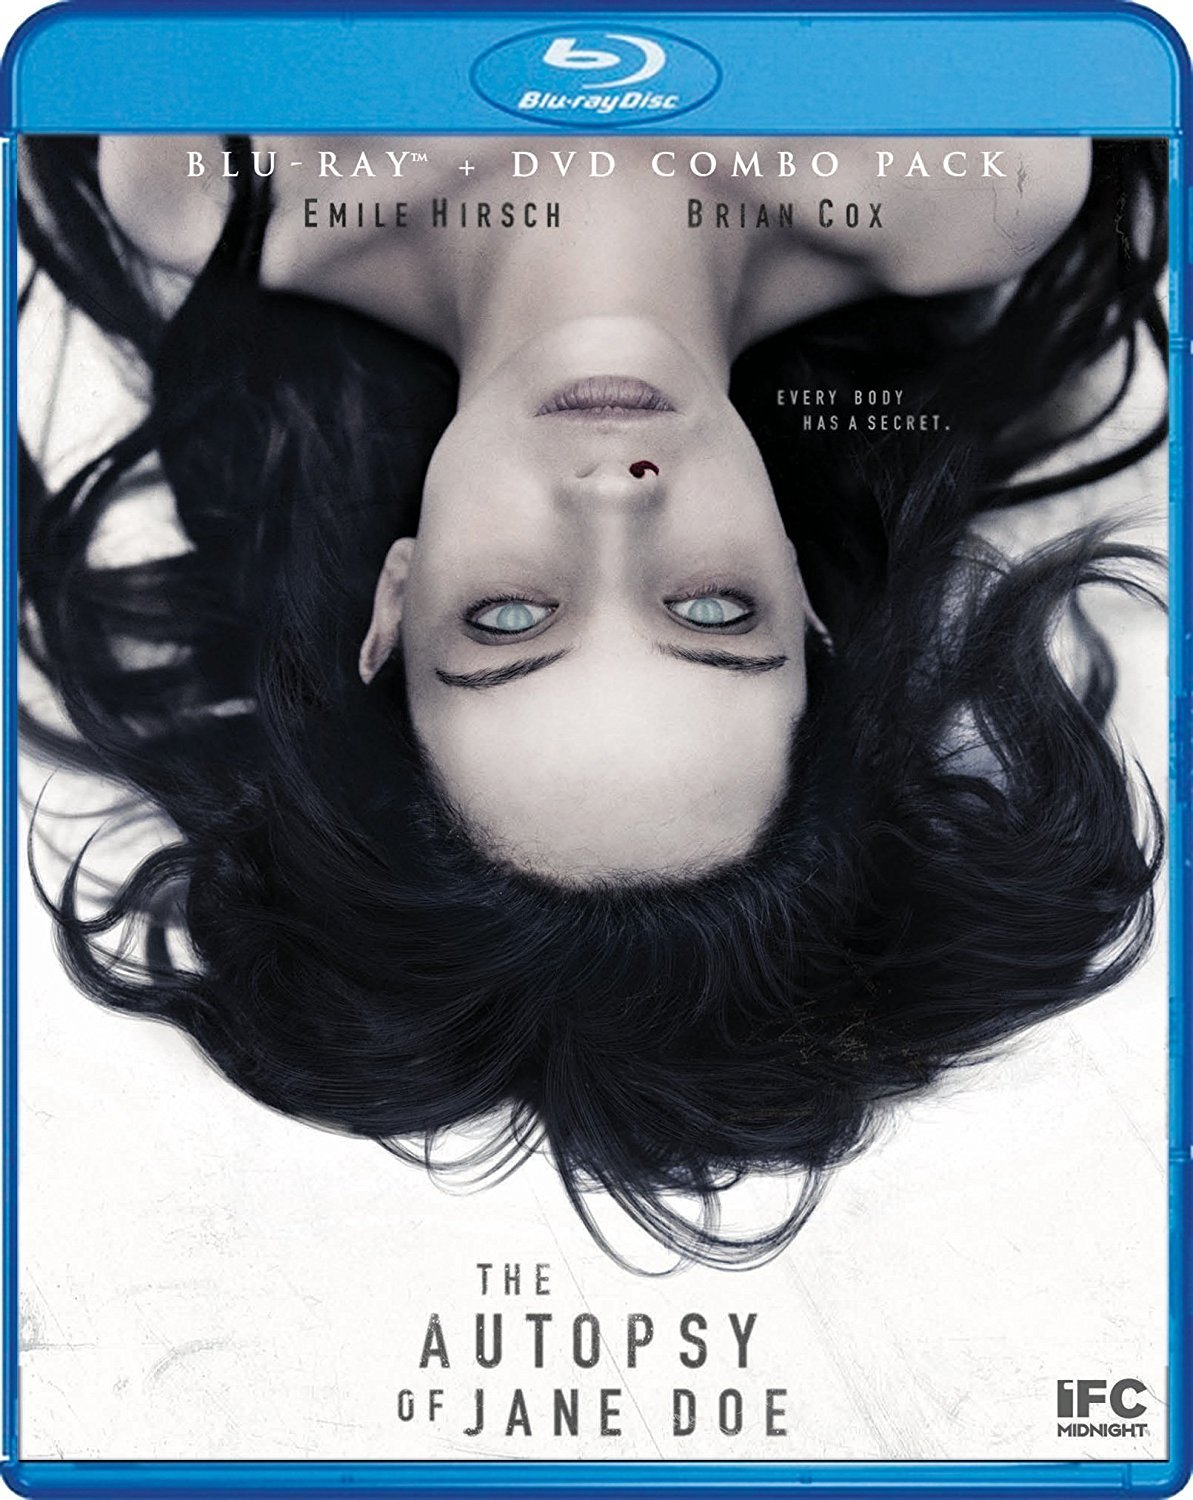 The Autopsy of Jane Doe (2016) poster image